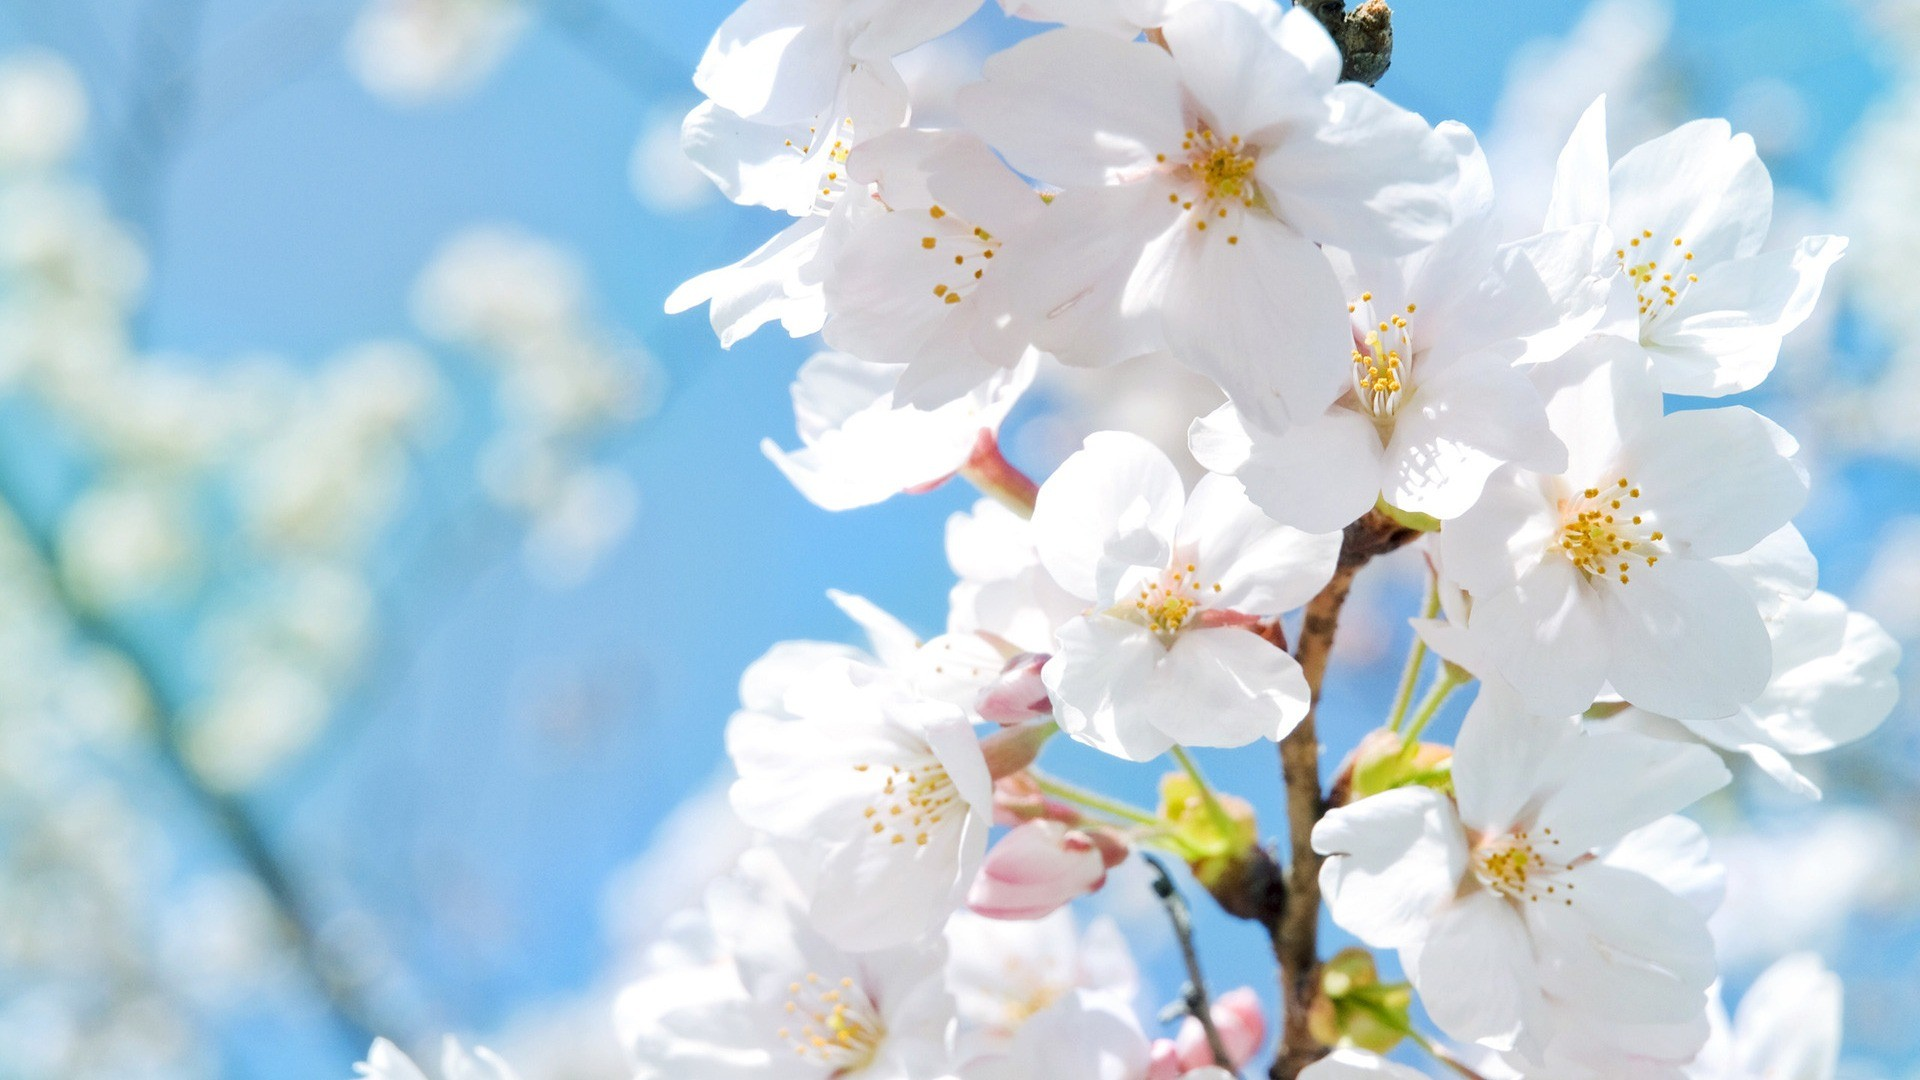 Flowers: Photography Tree White Flower Wall Blooming Cherry Spring ...